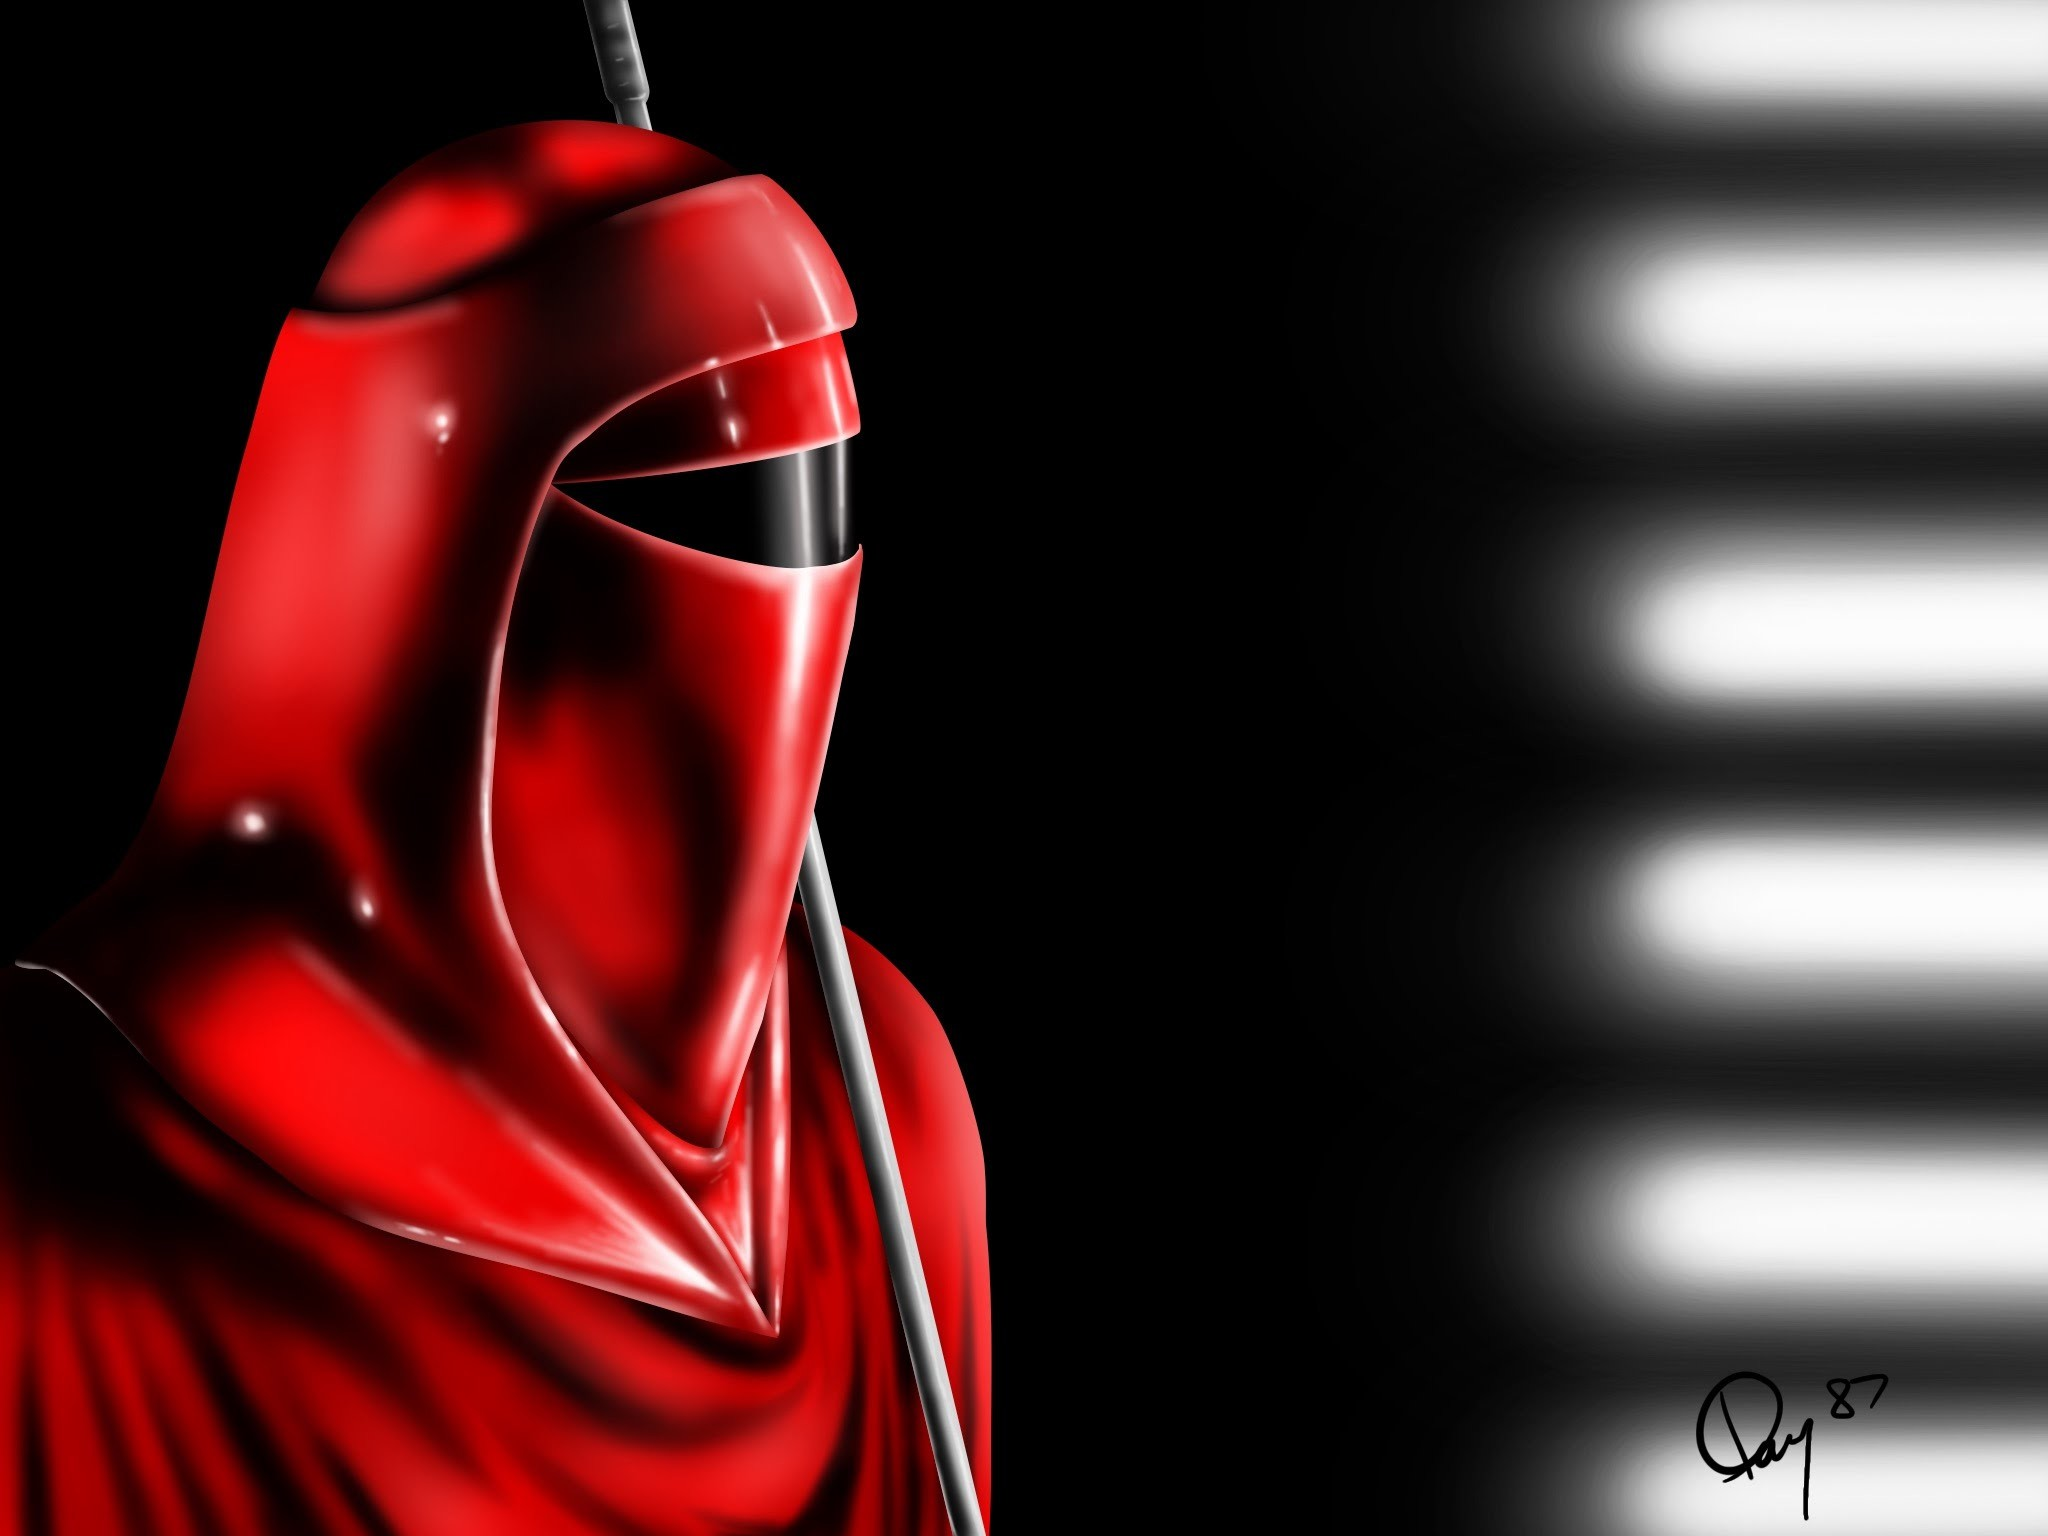 Star Wars Imperial Guard Wallpaper 66 Images